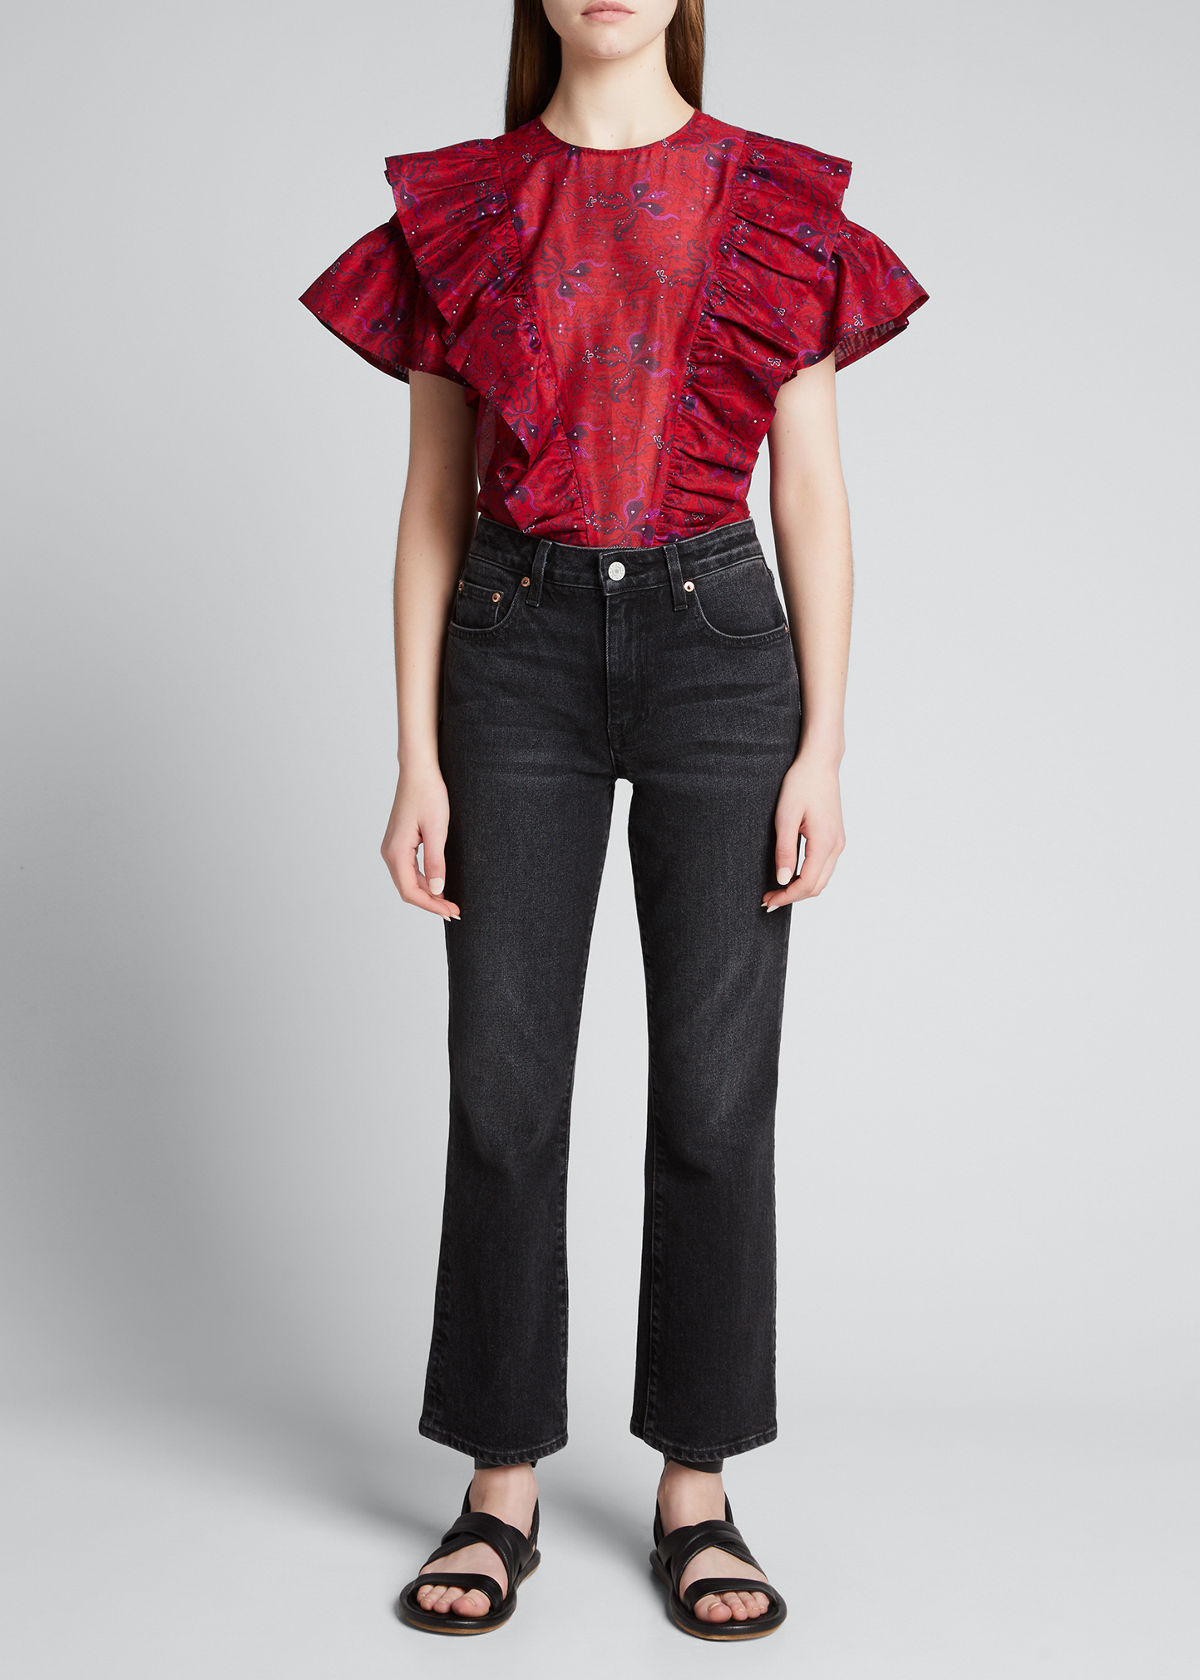 Les Coyotes De Paris Tina Structured Floral Ruffle Top In Red Graphic Flowe